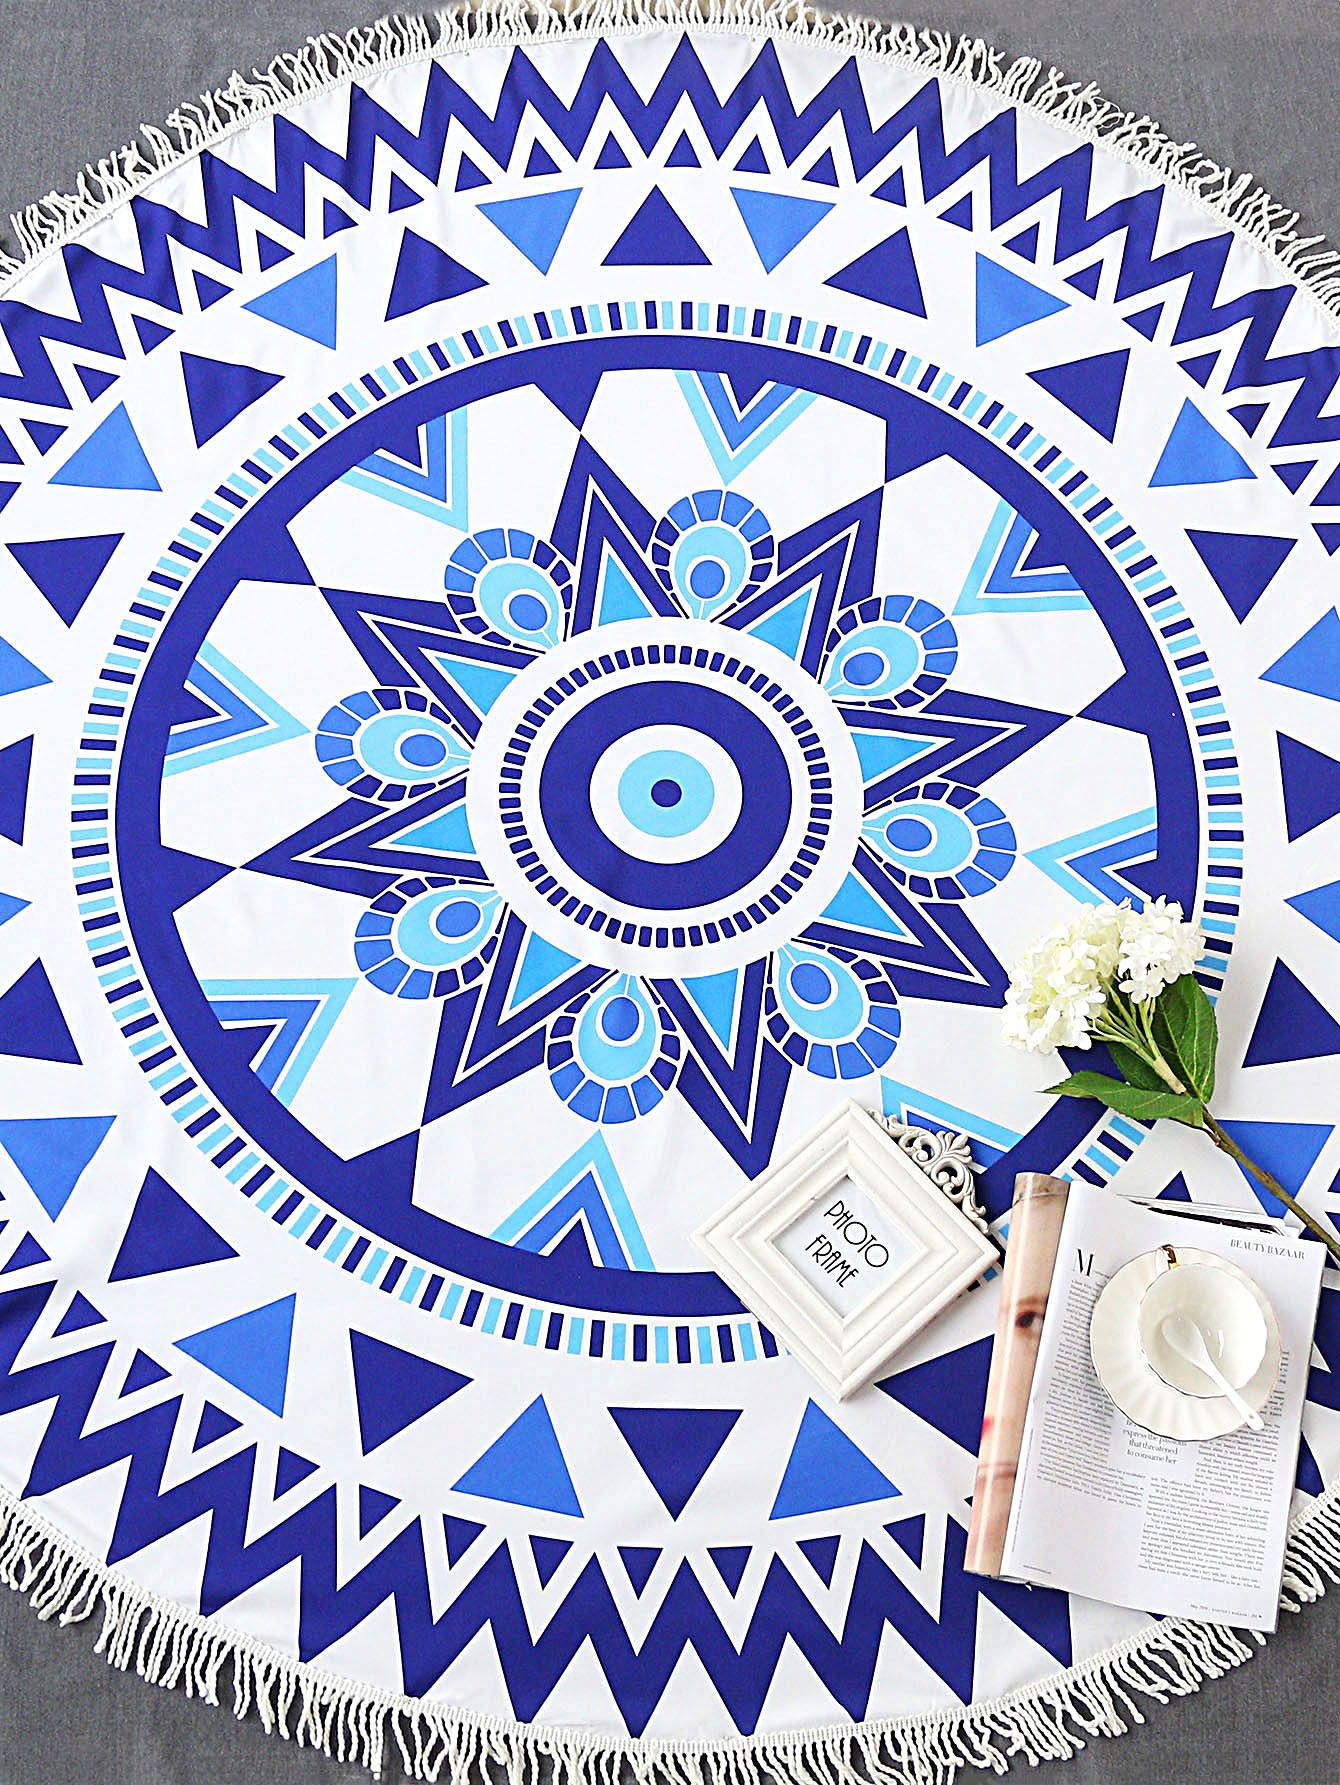 Buy it now. Blue Geometric Print Fringe Trim Round Beach Blanket. Blue Cover Ups & Beach Dresses Vintage Polyester Print Swimwear. , vestidoinformal, casual, camiseta, playeros, informales, túnica, estilocamiseta, camisola, vestidodealgodón, vestidosdealgodón, verano, informal, playa, playero, capa, capas, vestidobabydoll, camisole, túnica, shift, pleat, pleated, drape, t-shape, daisy, foldedshoulder, summer, loosefit, tunictop, swing, day, offtheshoulder, smock, print, printed, tea, baby...